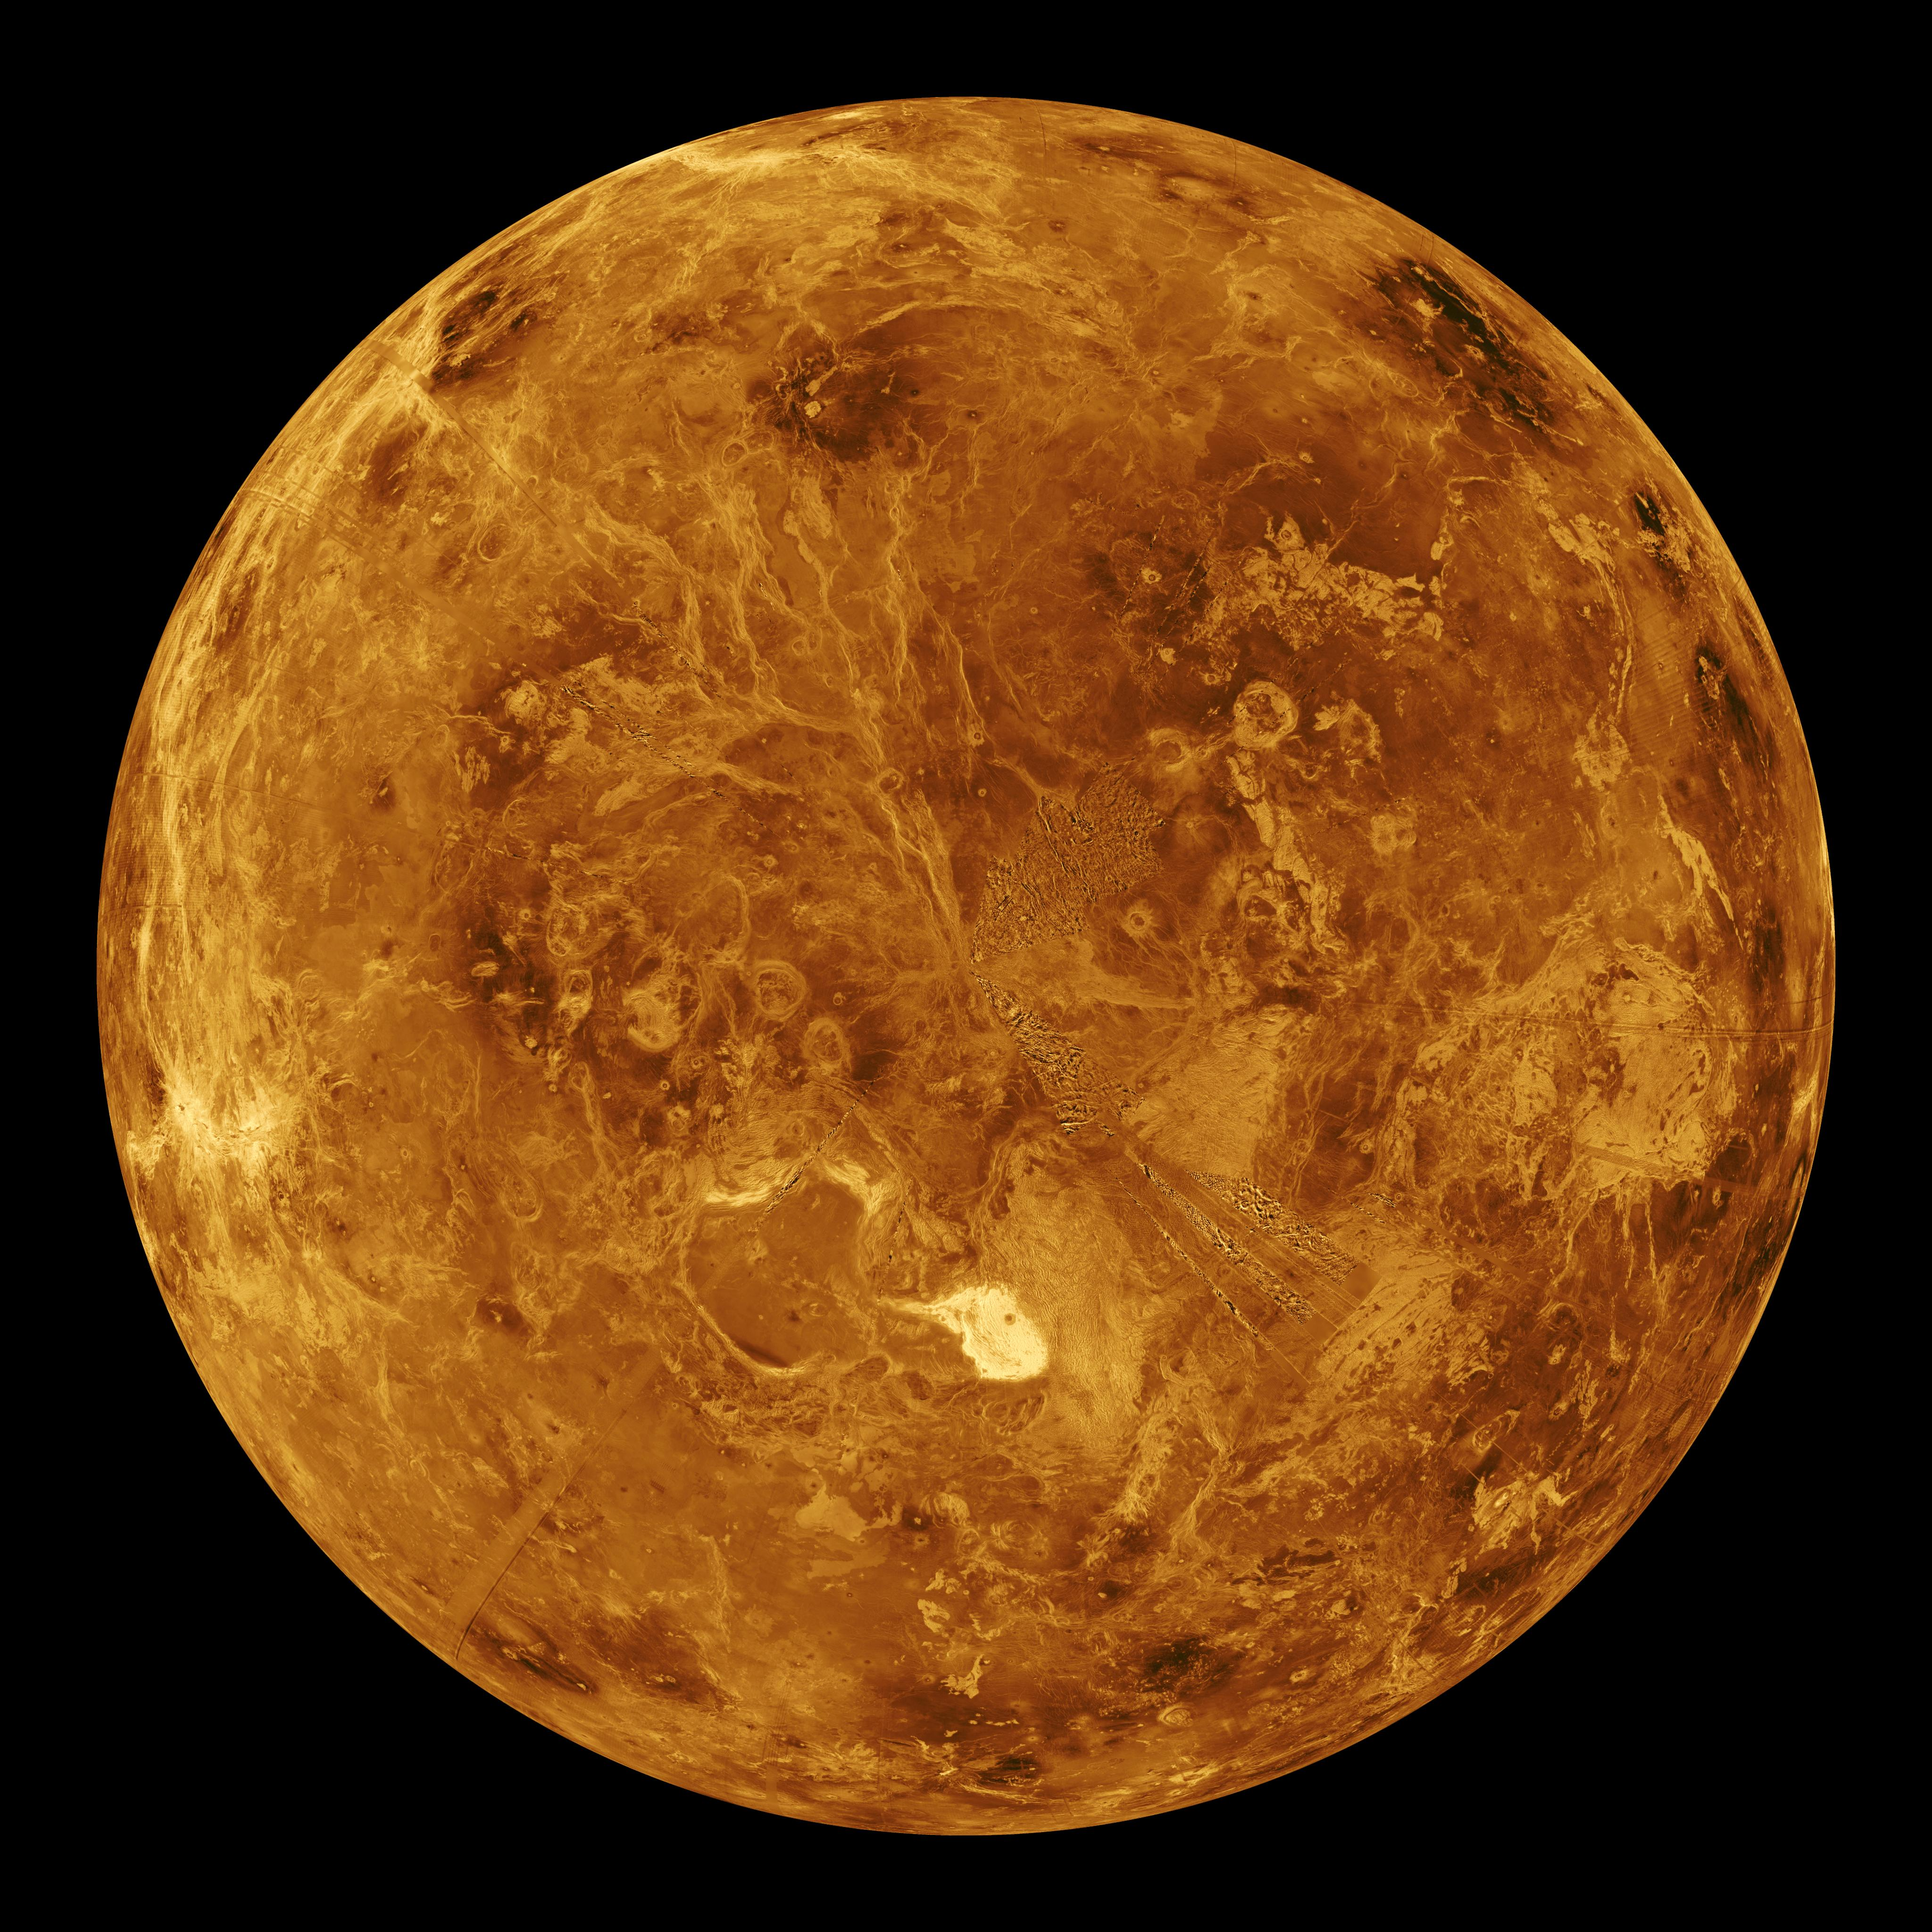 venus solar system exploration - photo #25